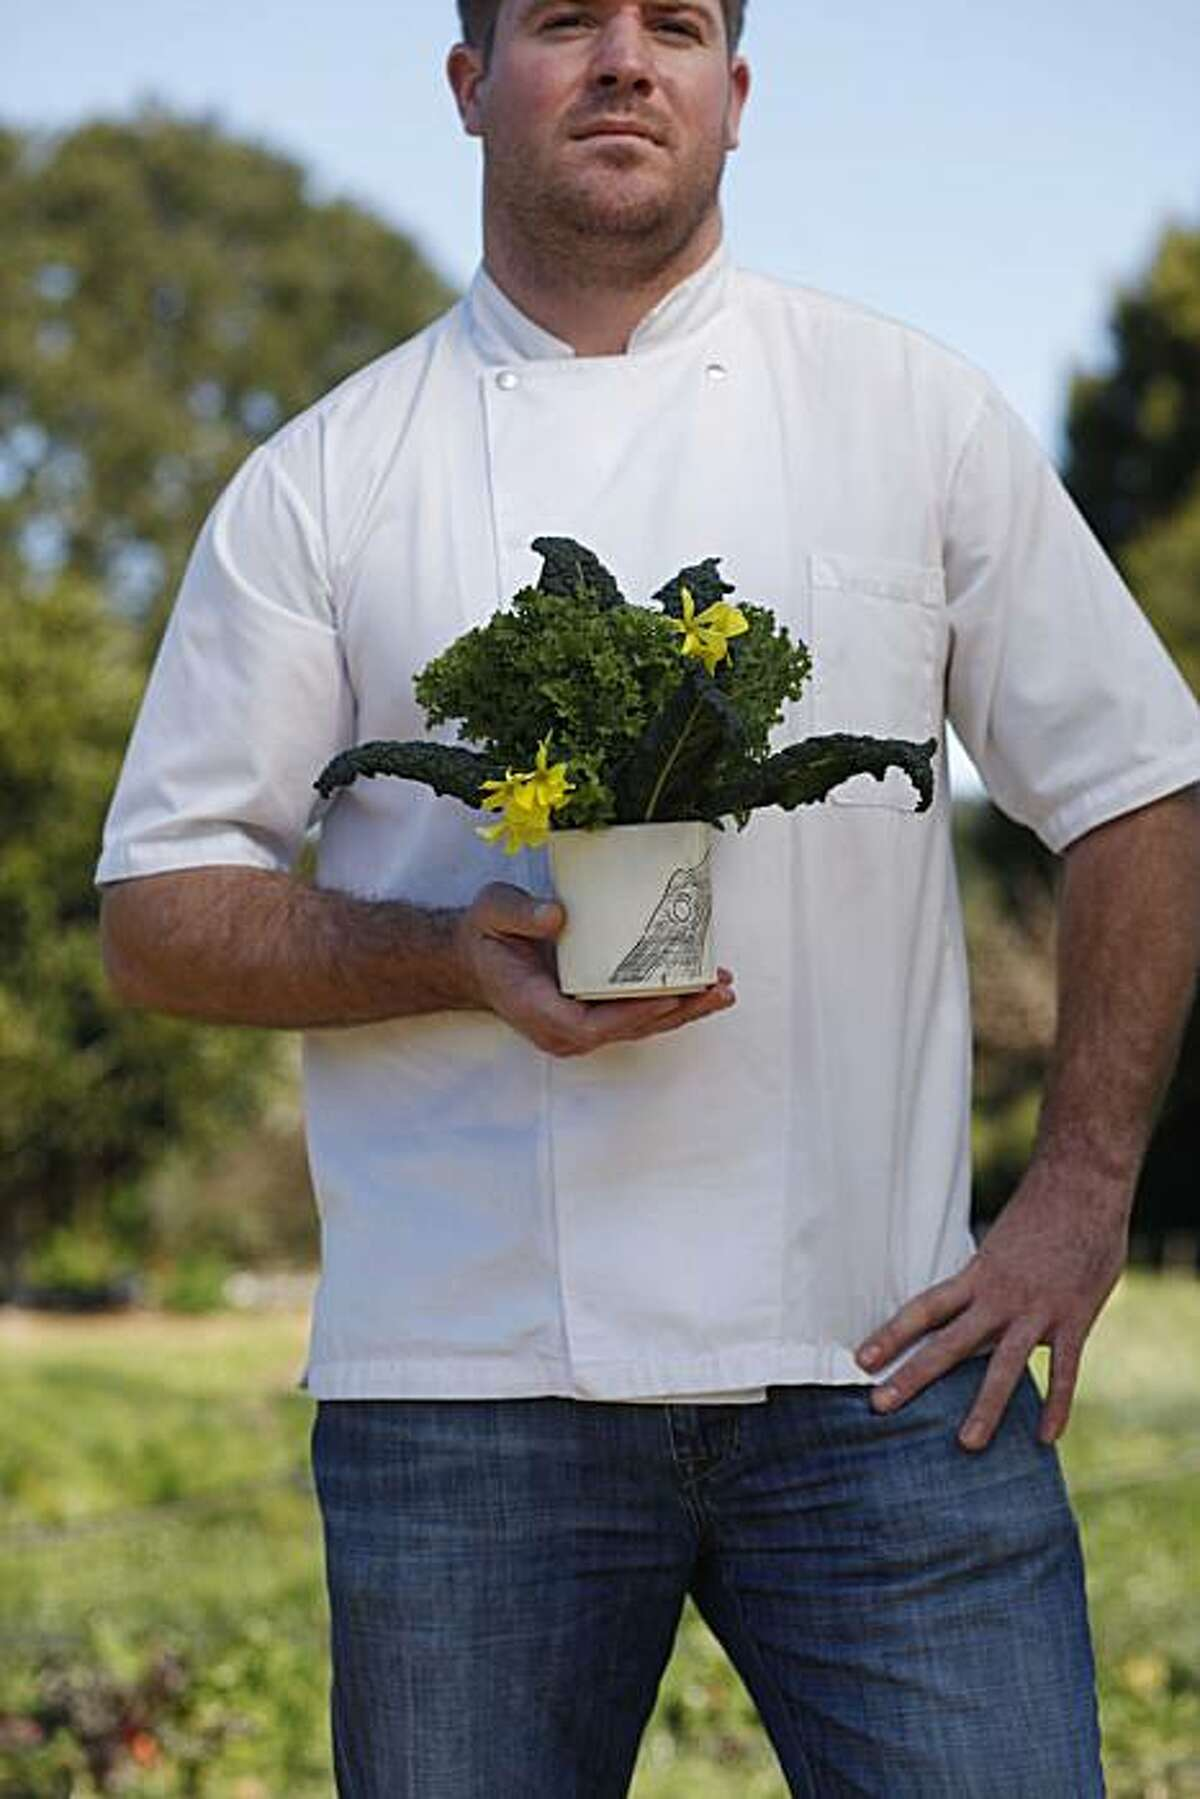 Charlie Parker, Executive Chef at Plum in Oakland., one of six bay area rising star chefs stand for a portrait at the Edible Schoolyard on the Martin Luther King Middle School campus on Tuesday Feb. 22, 2011 in Berkeley, Calif.